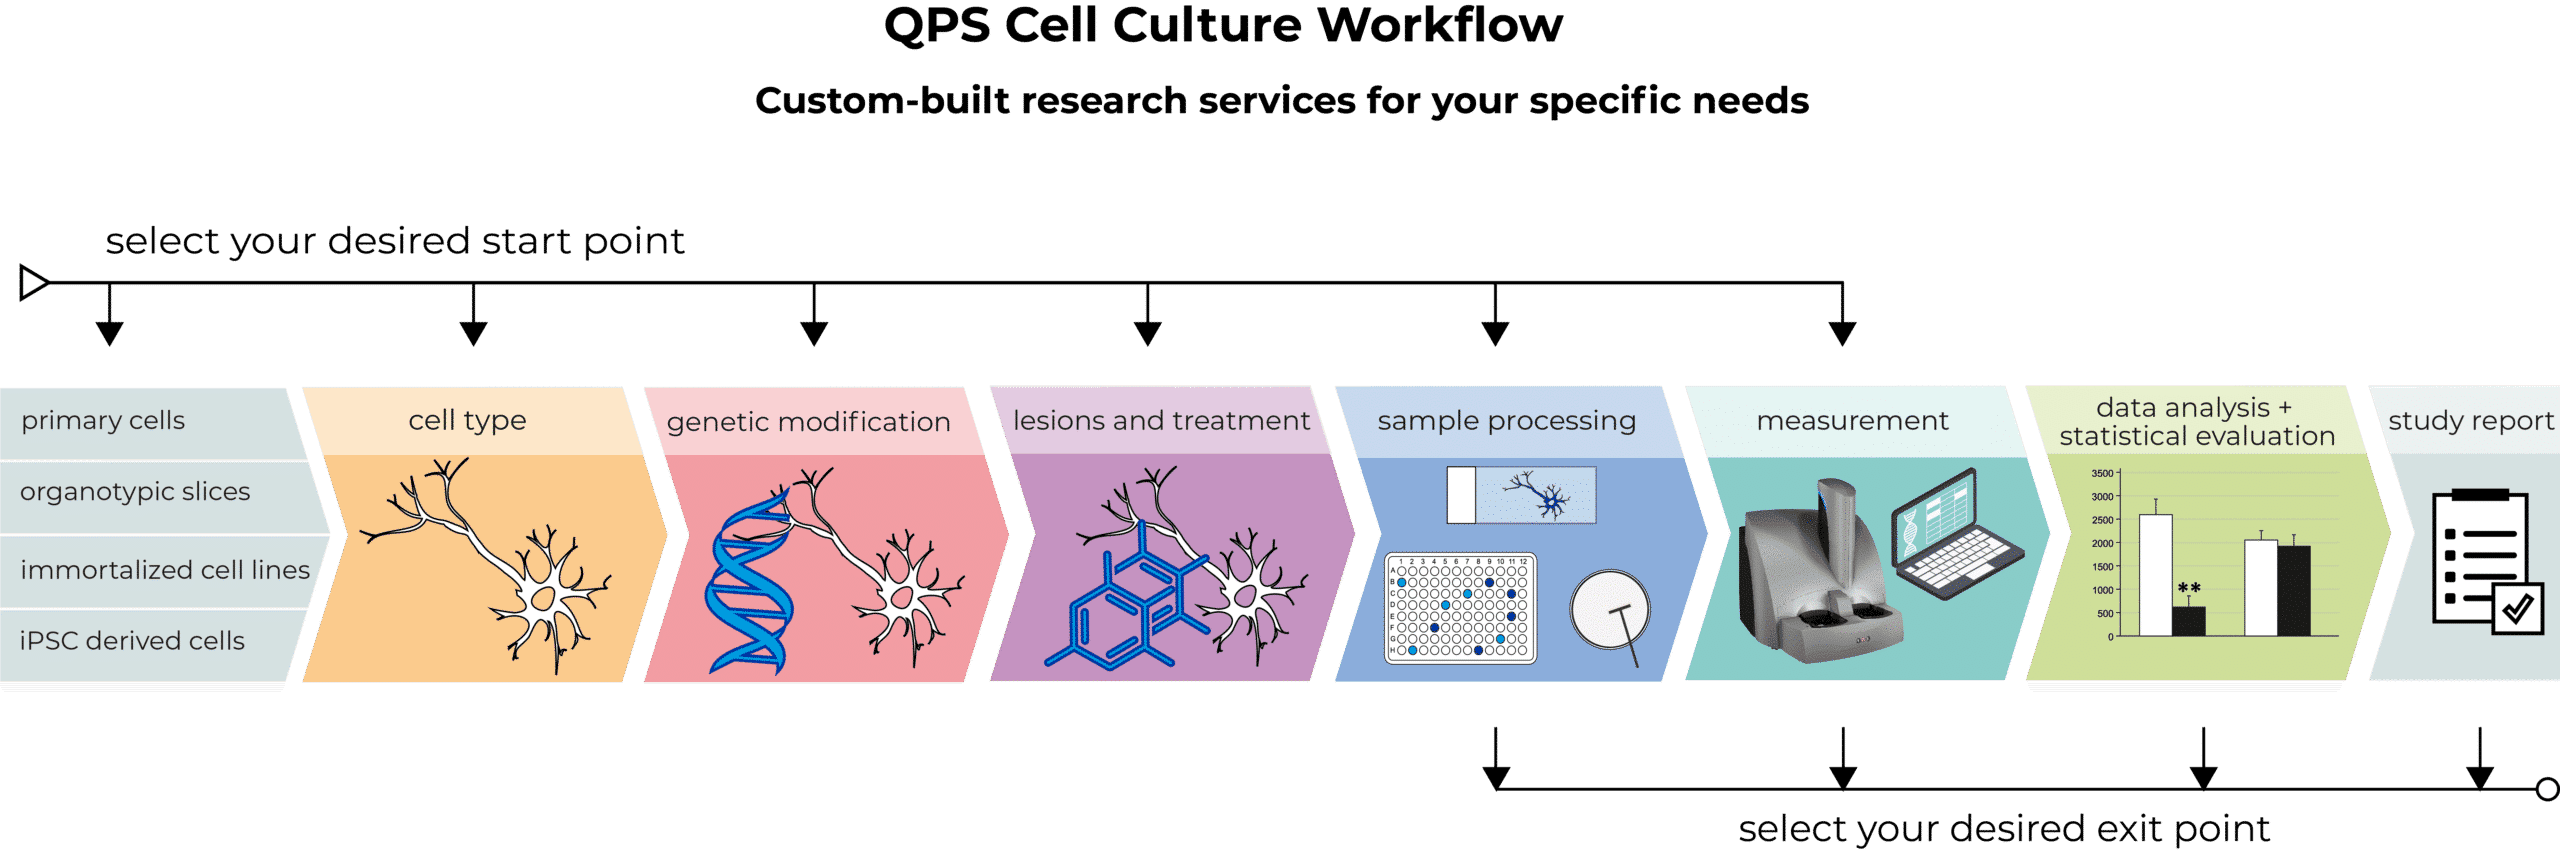 Cellculture-workflow